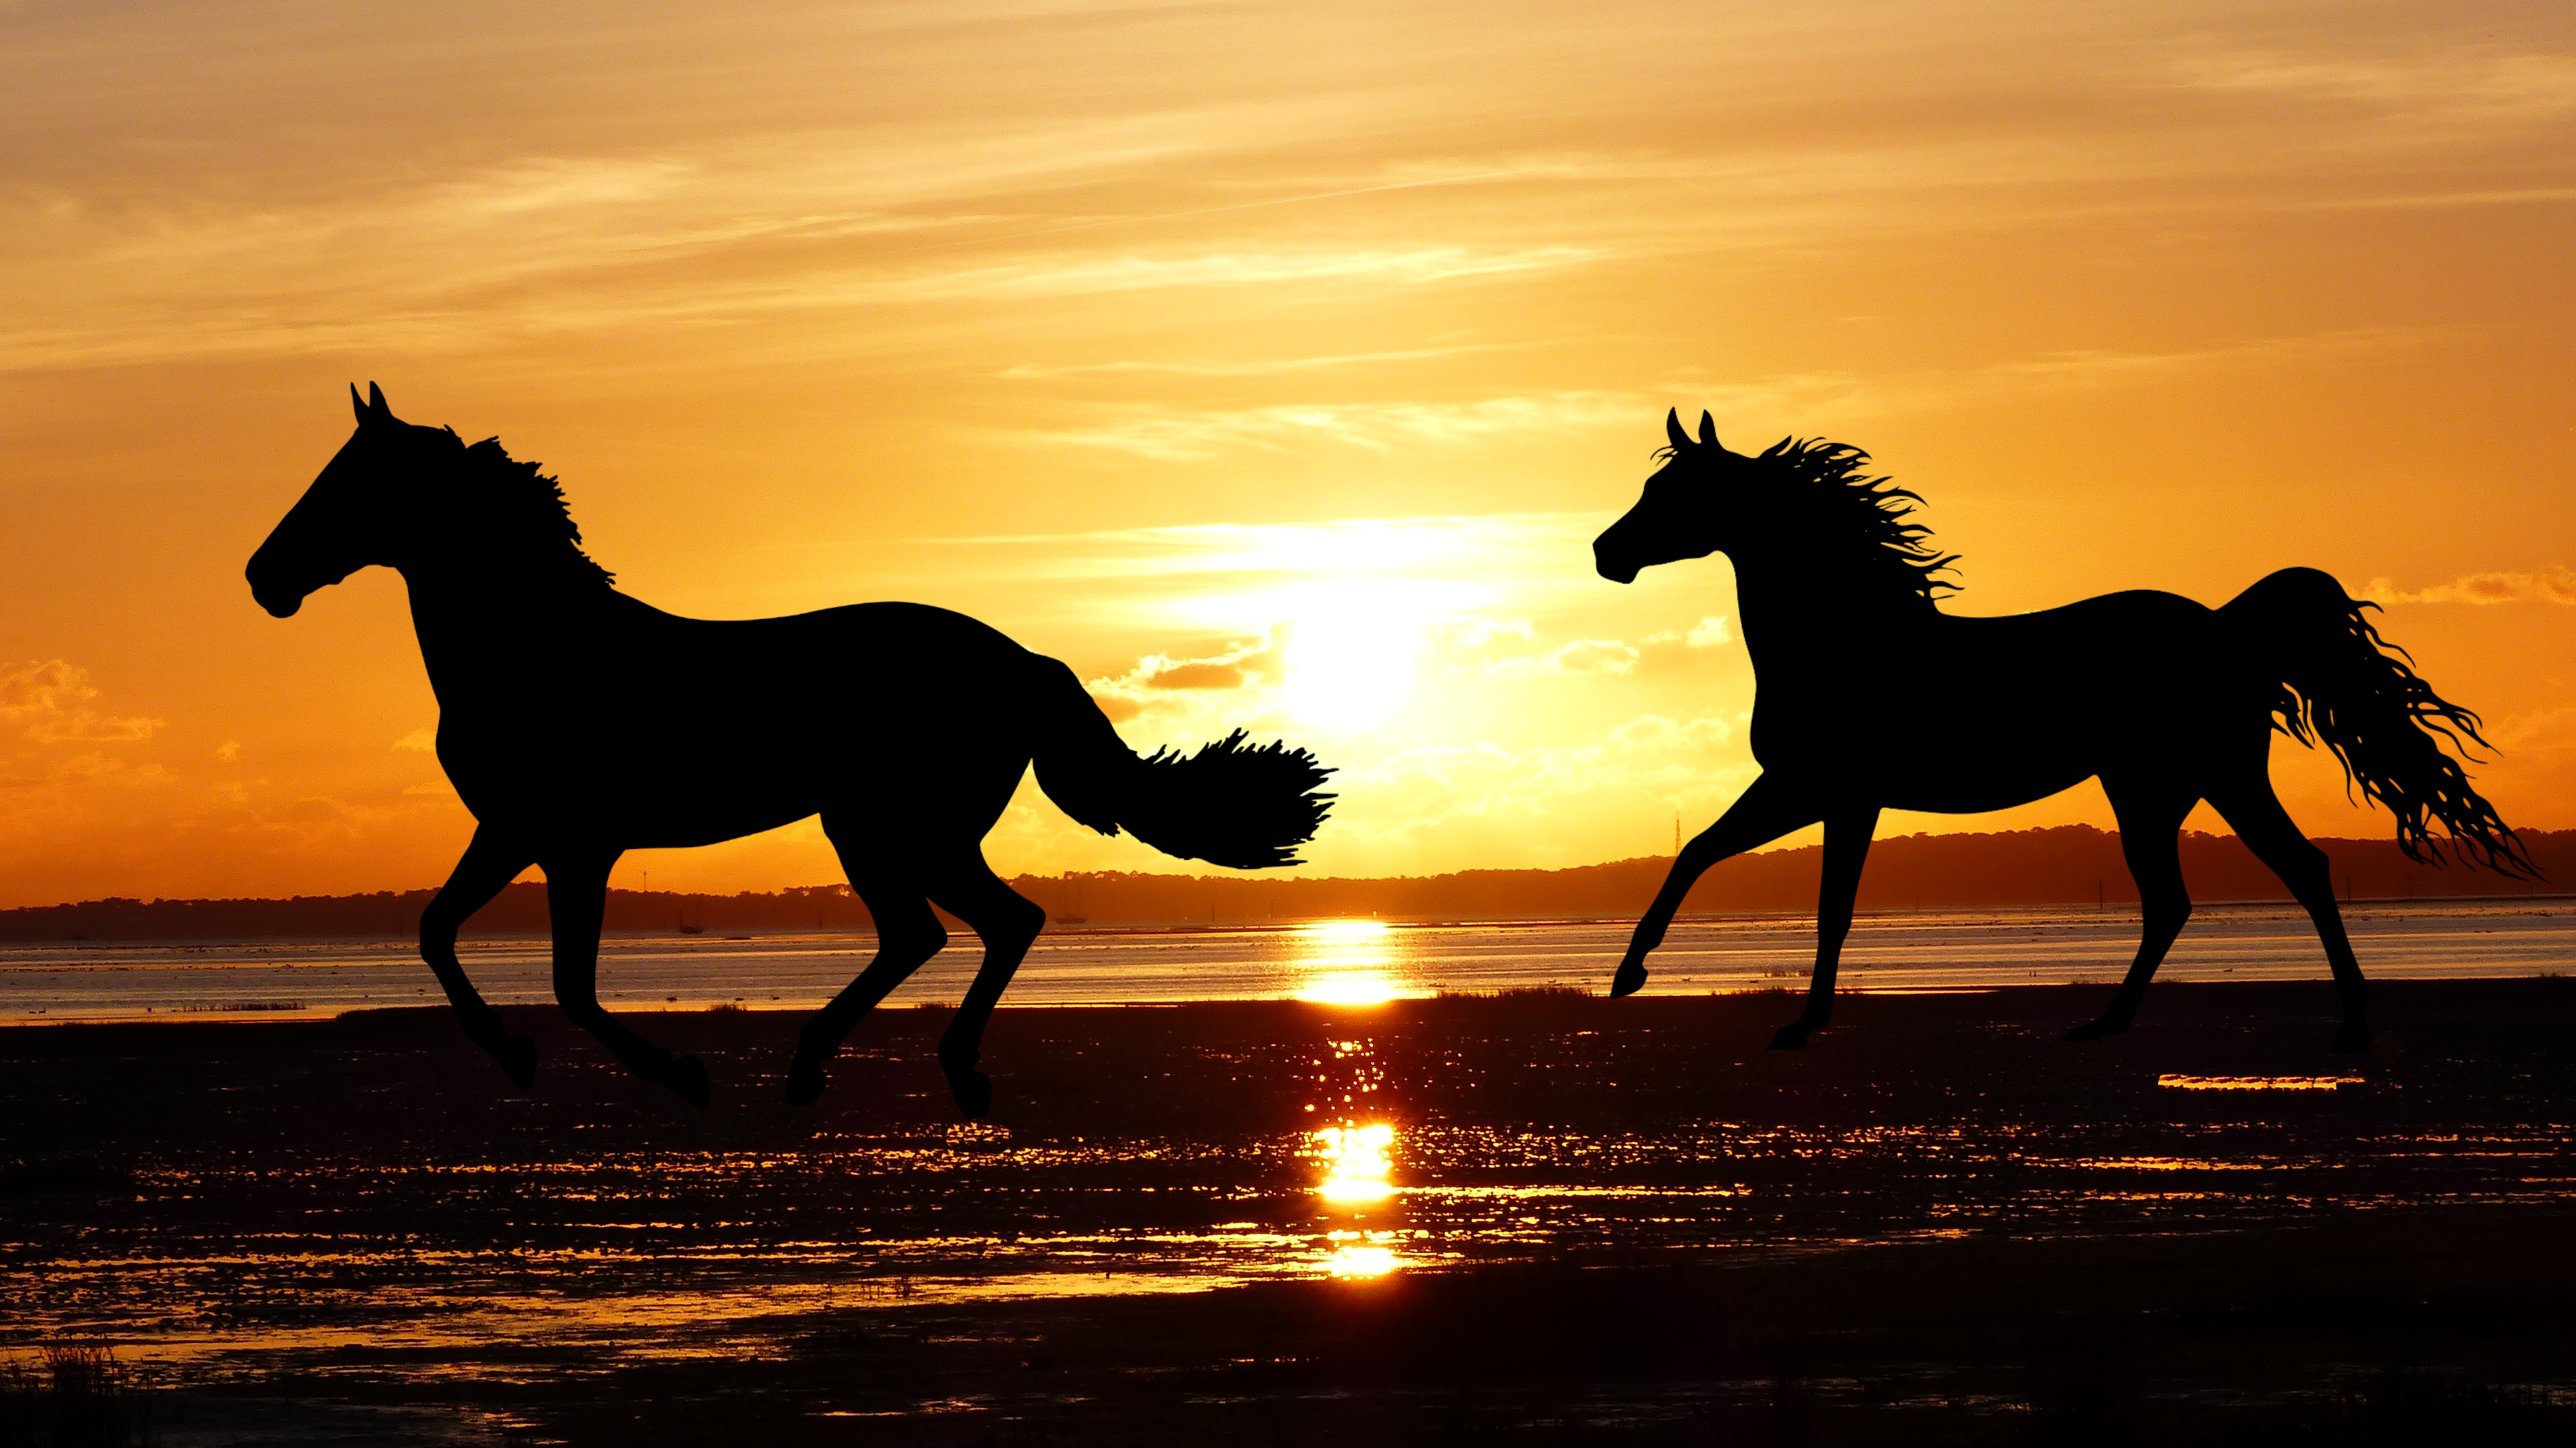 Two Running Horses On The Beach At Sunset Free Image